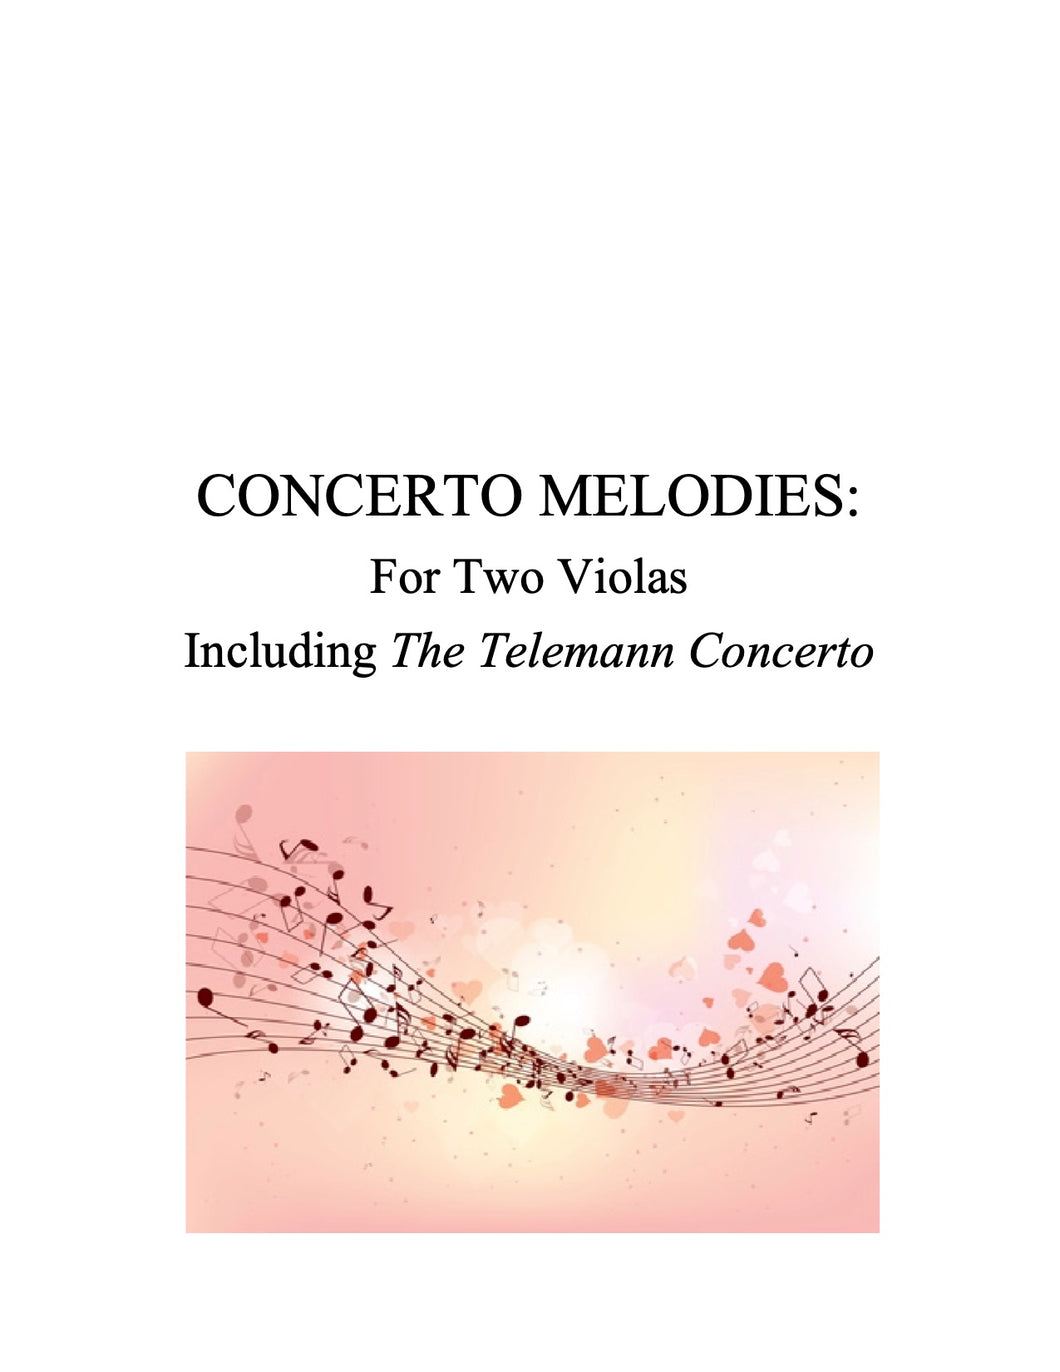 088 Concerto Melodies for Two Violas